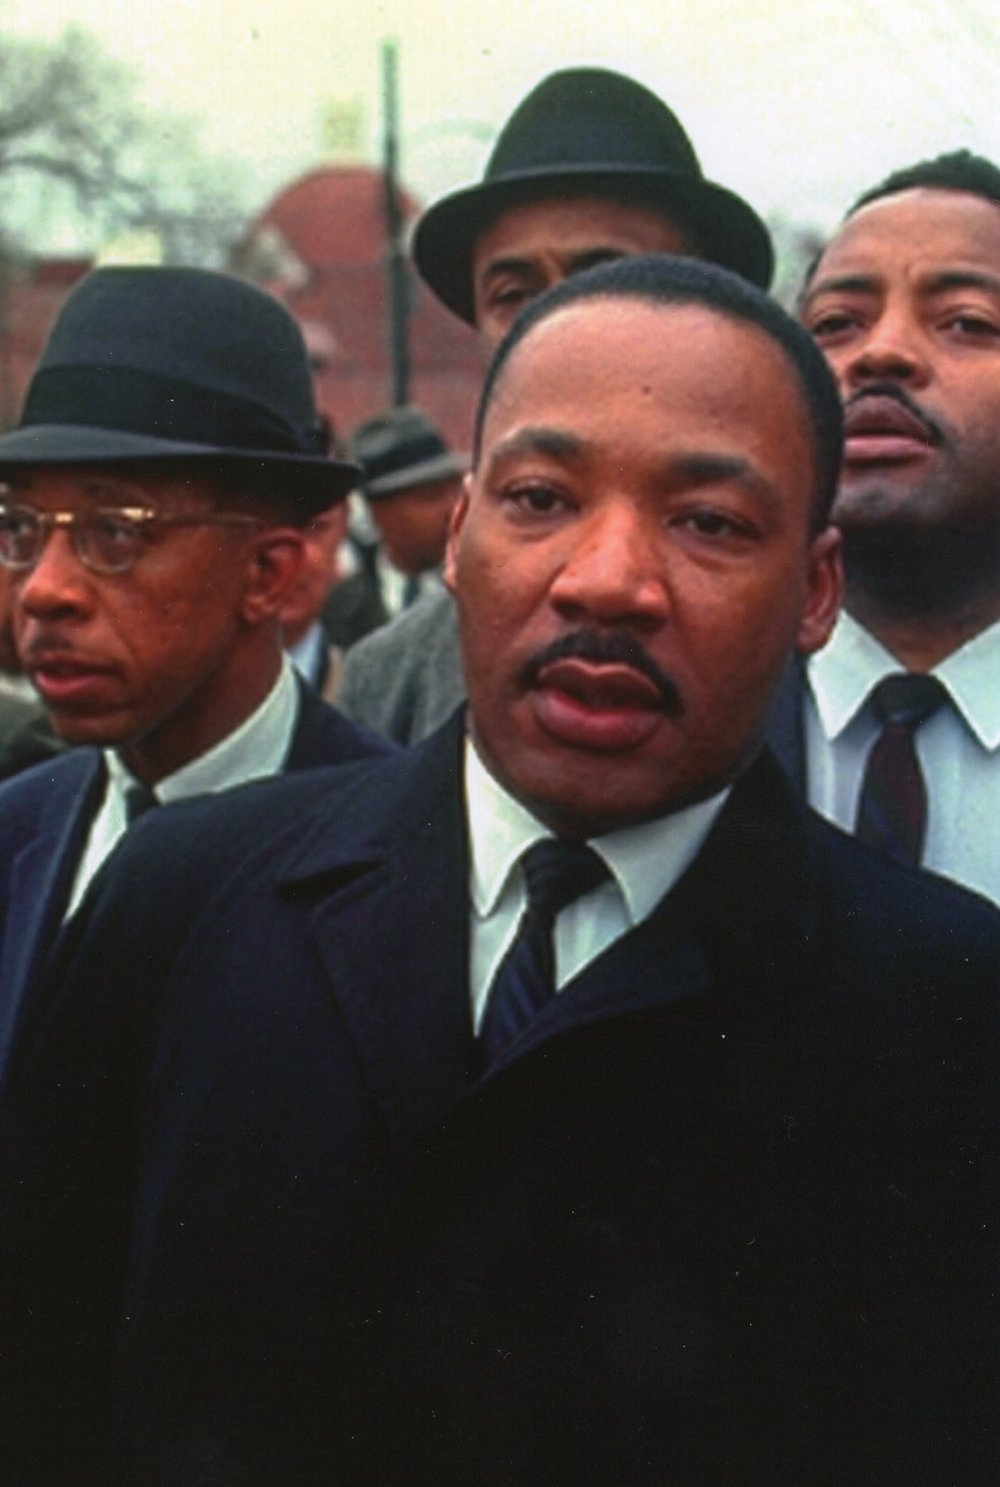 Martin Luther King Jr. on Pettus Bridge Selma-Montgomery Civil Rights March March 21, 1965